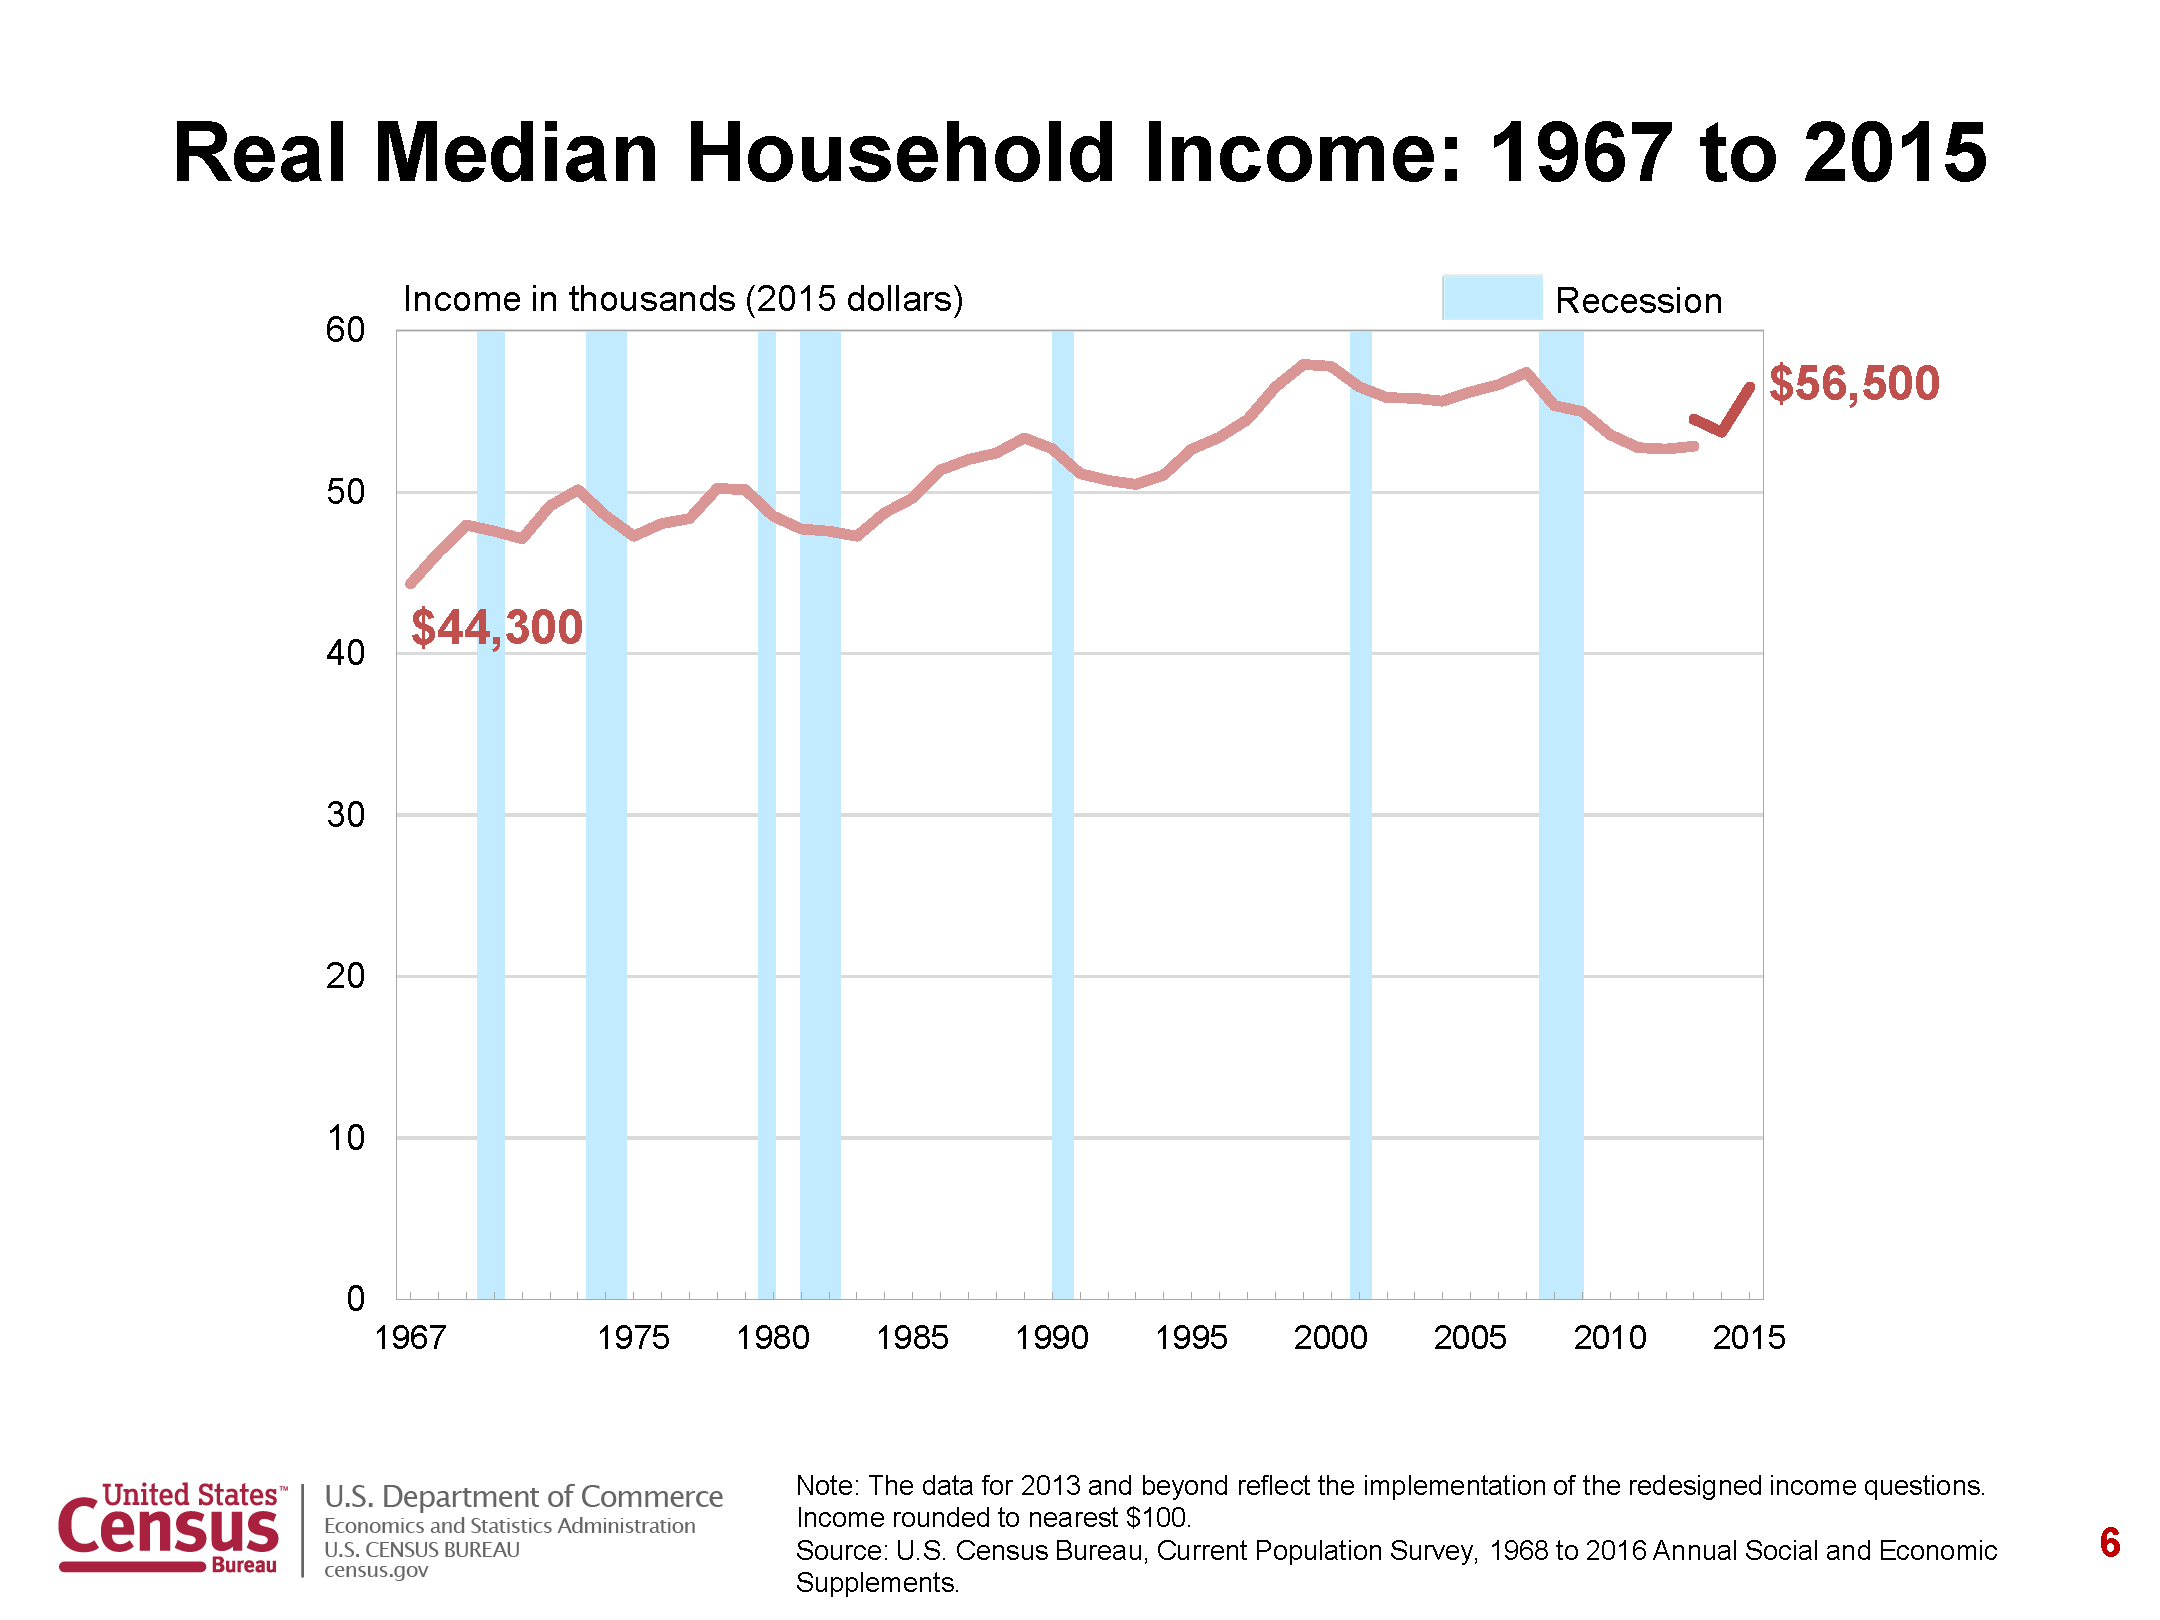 Median Household Income in the USA